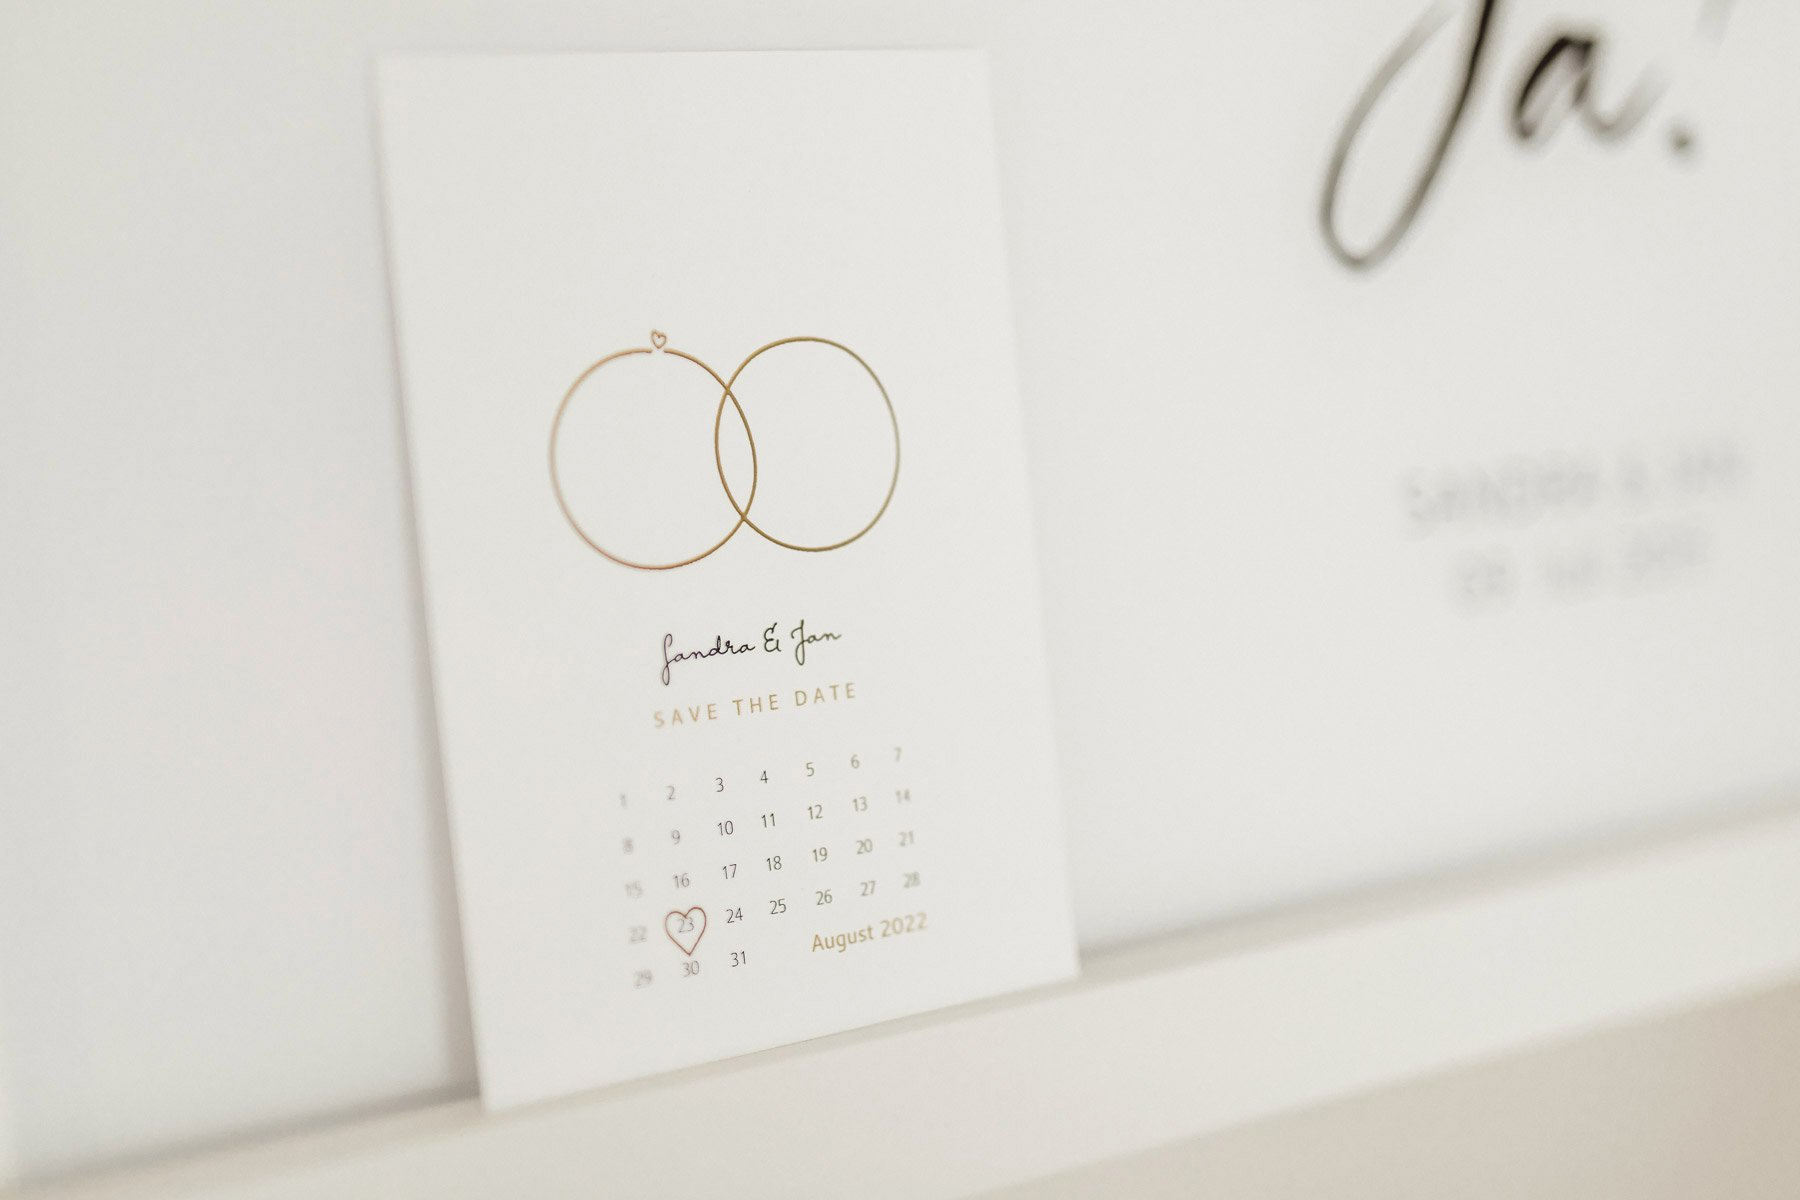 1633150642 767 Tips and ideas for your save the date cards - Tips and ideas for your save-the-date cards